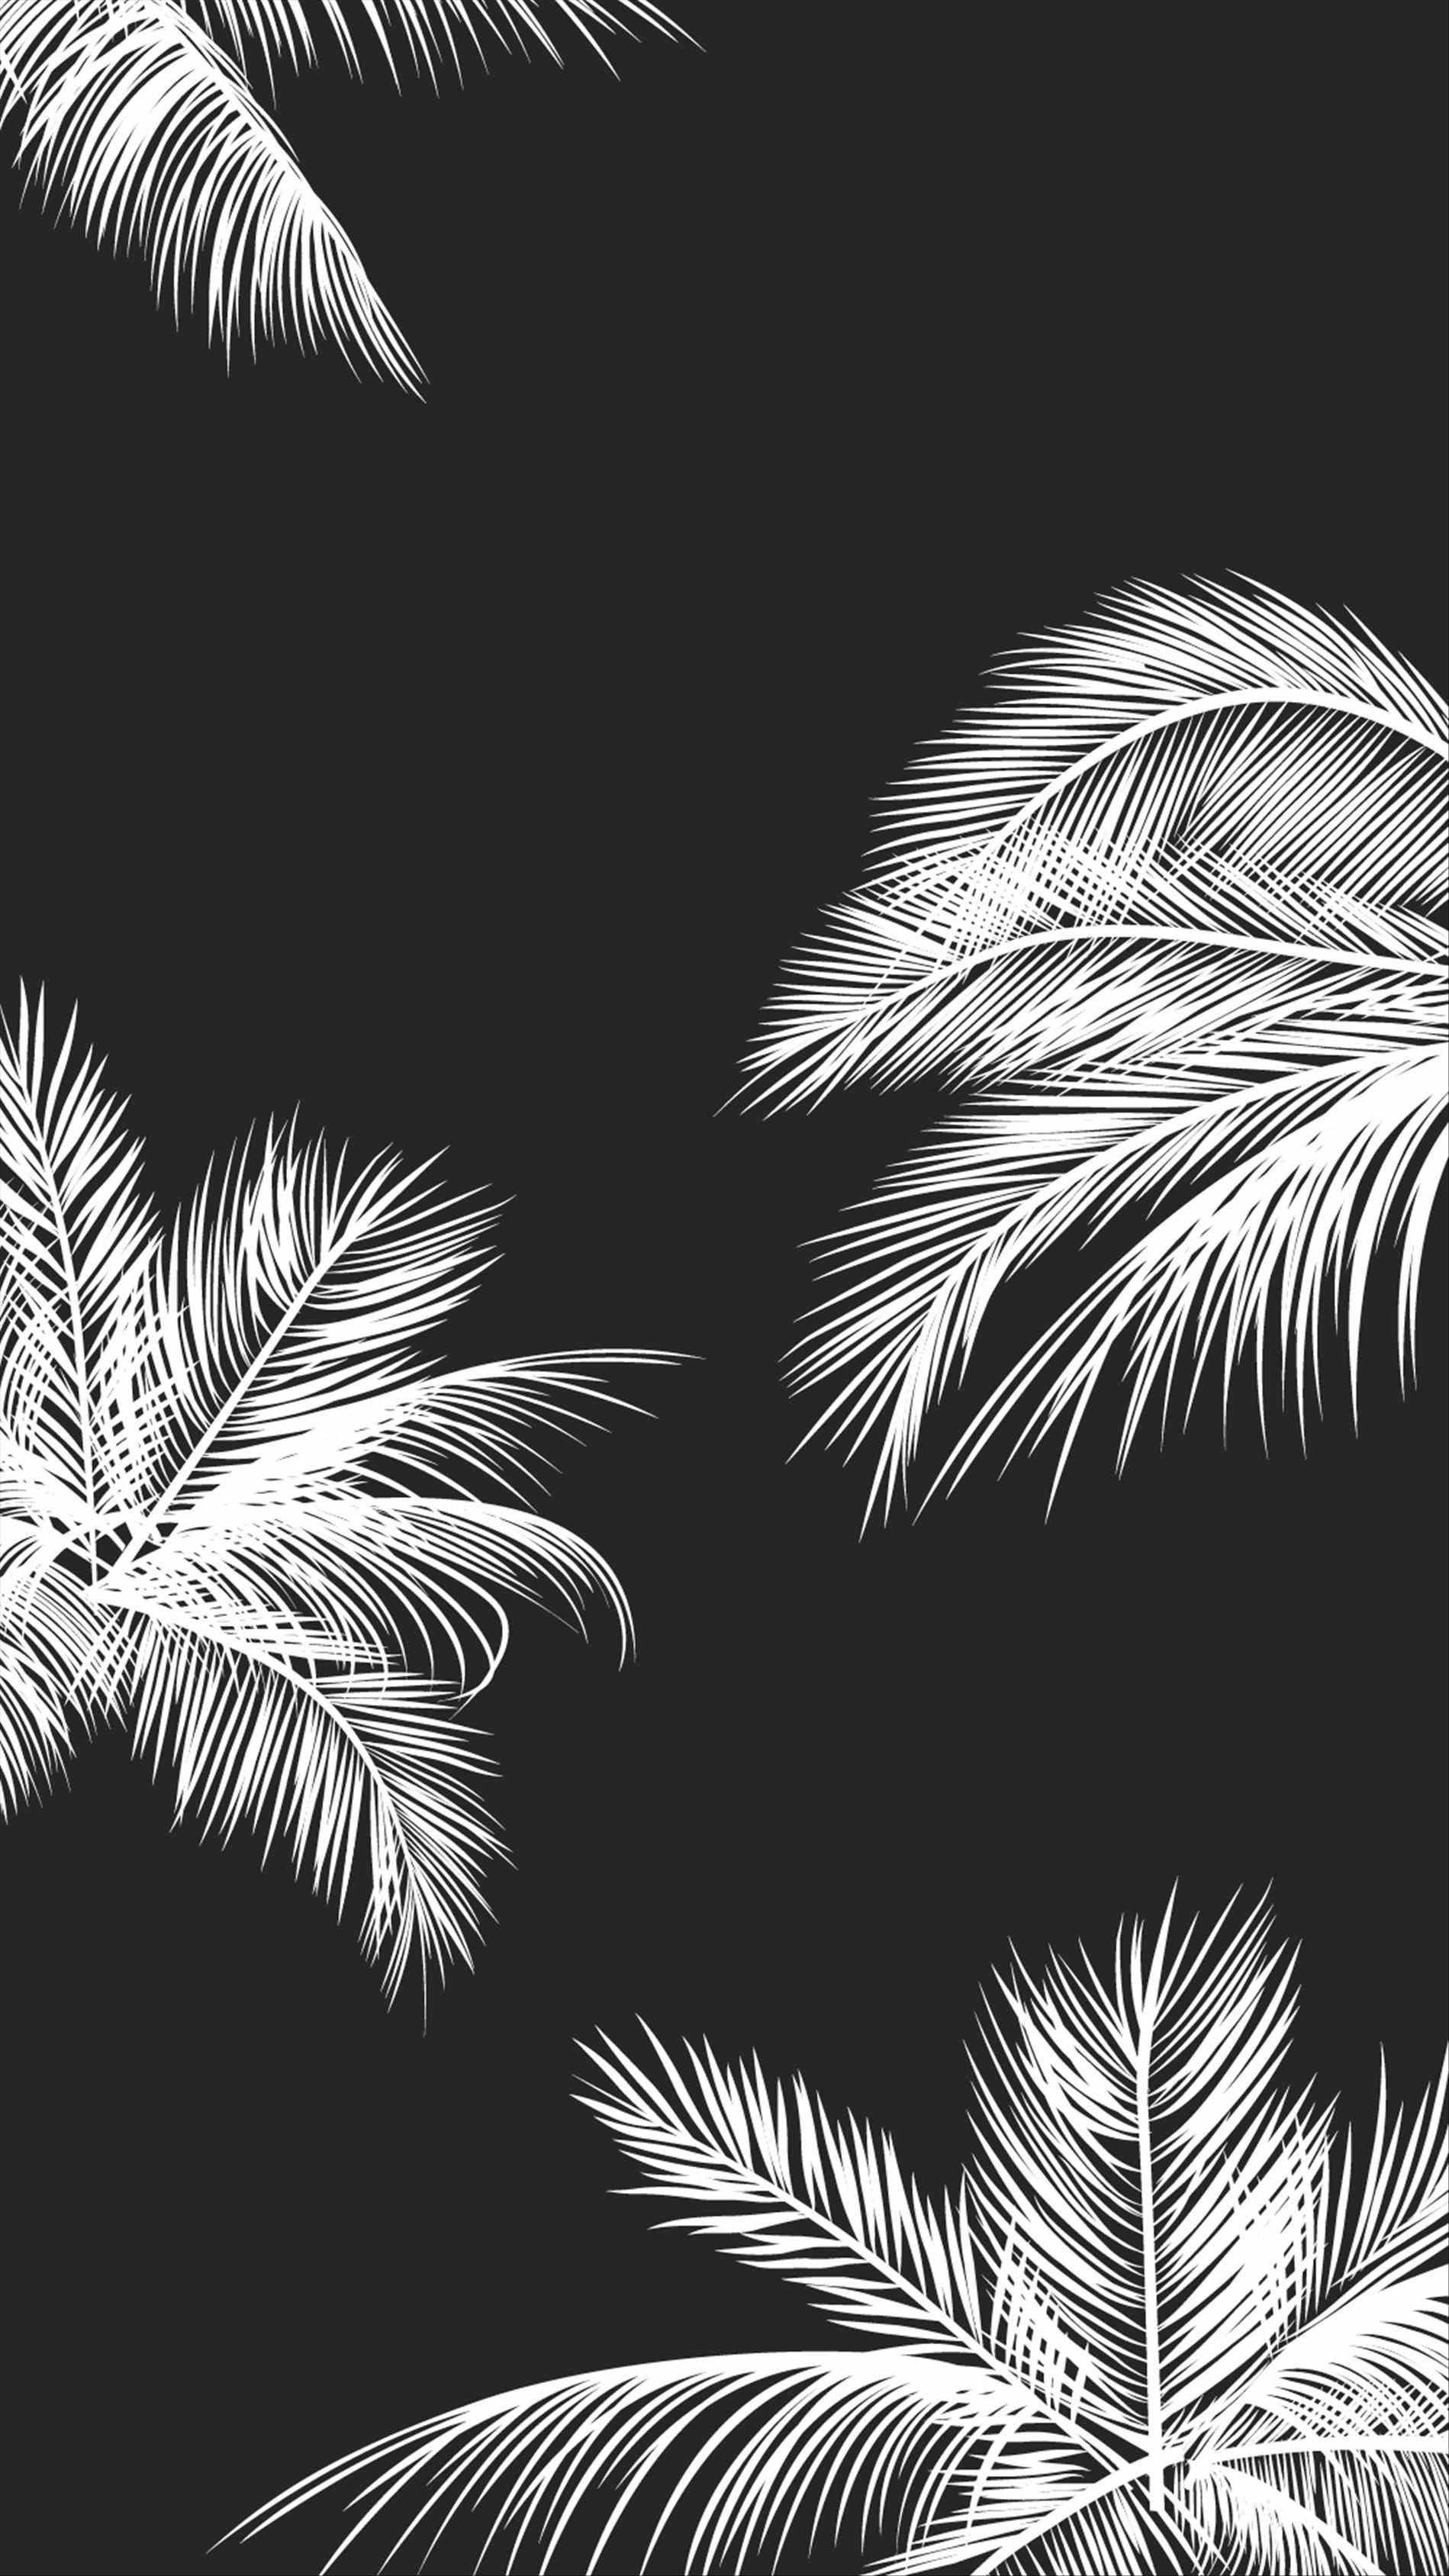 Aesthetic Black And White Edgy Wallpaper Tumblr Background Image George S Blog